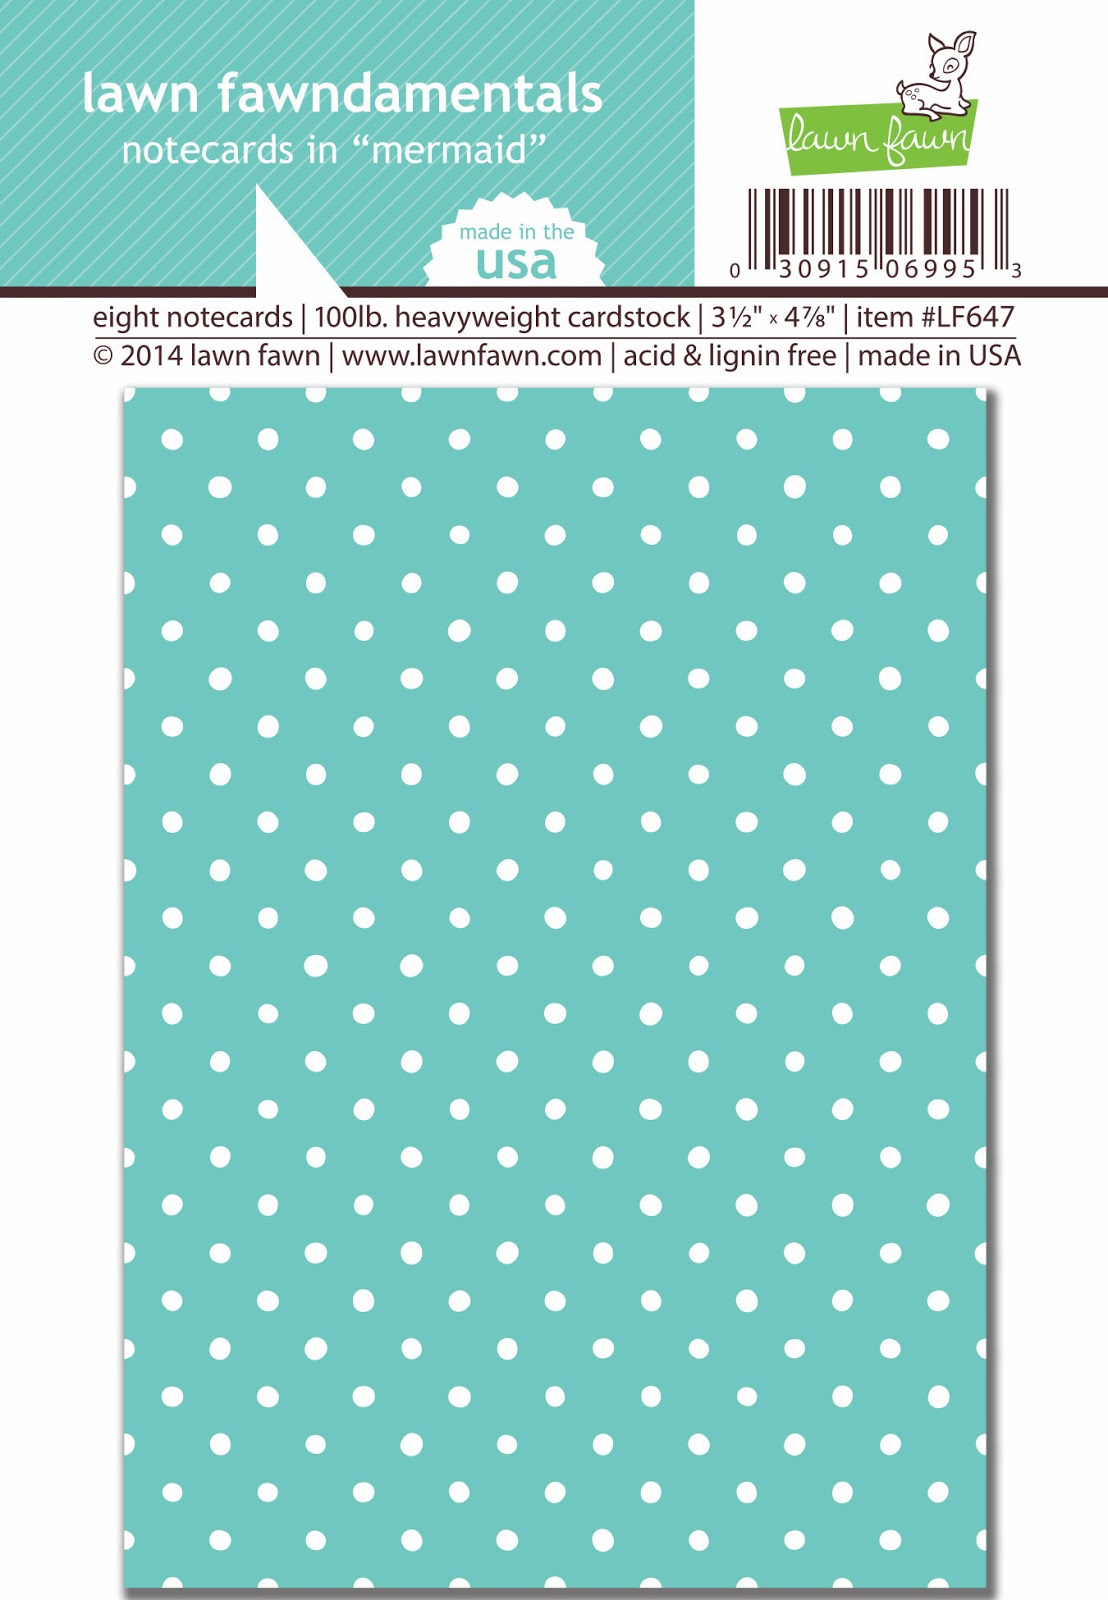 http://www.lawnfawn.com/collections/new-products/products/mermaid-notecards